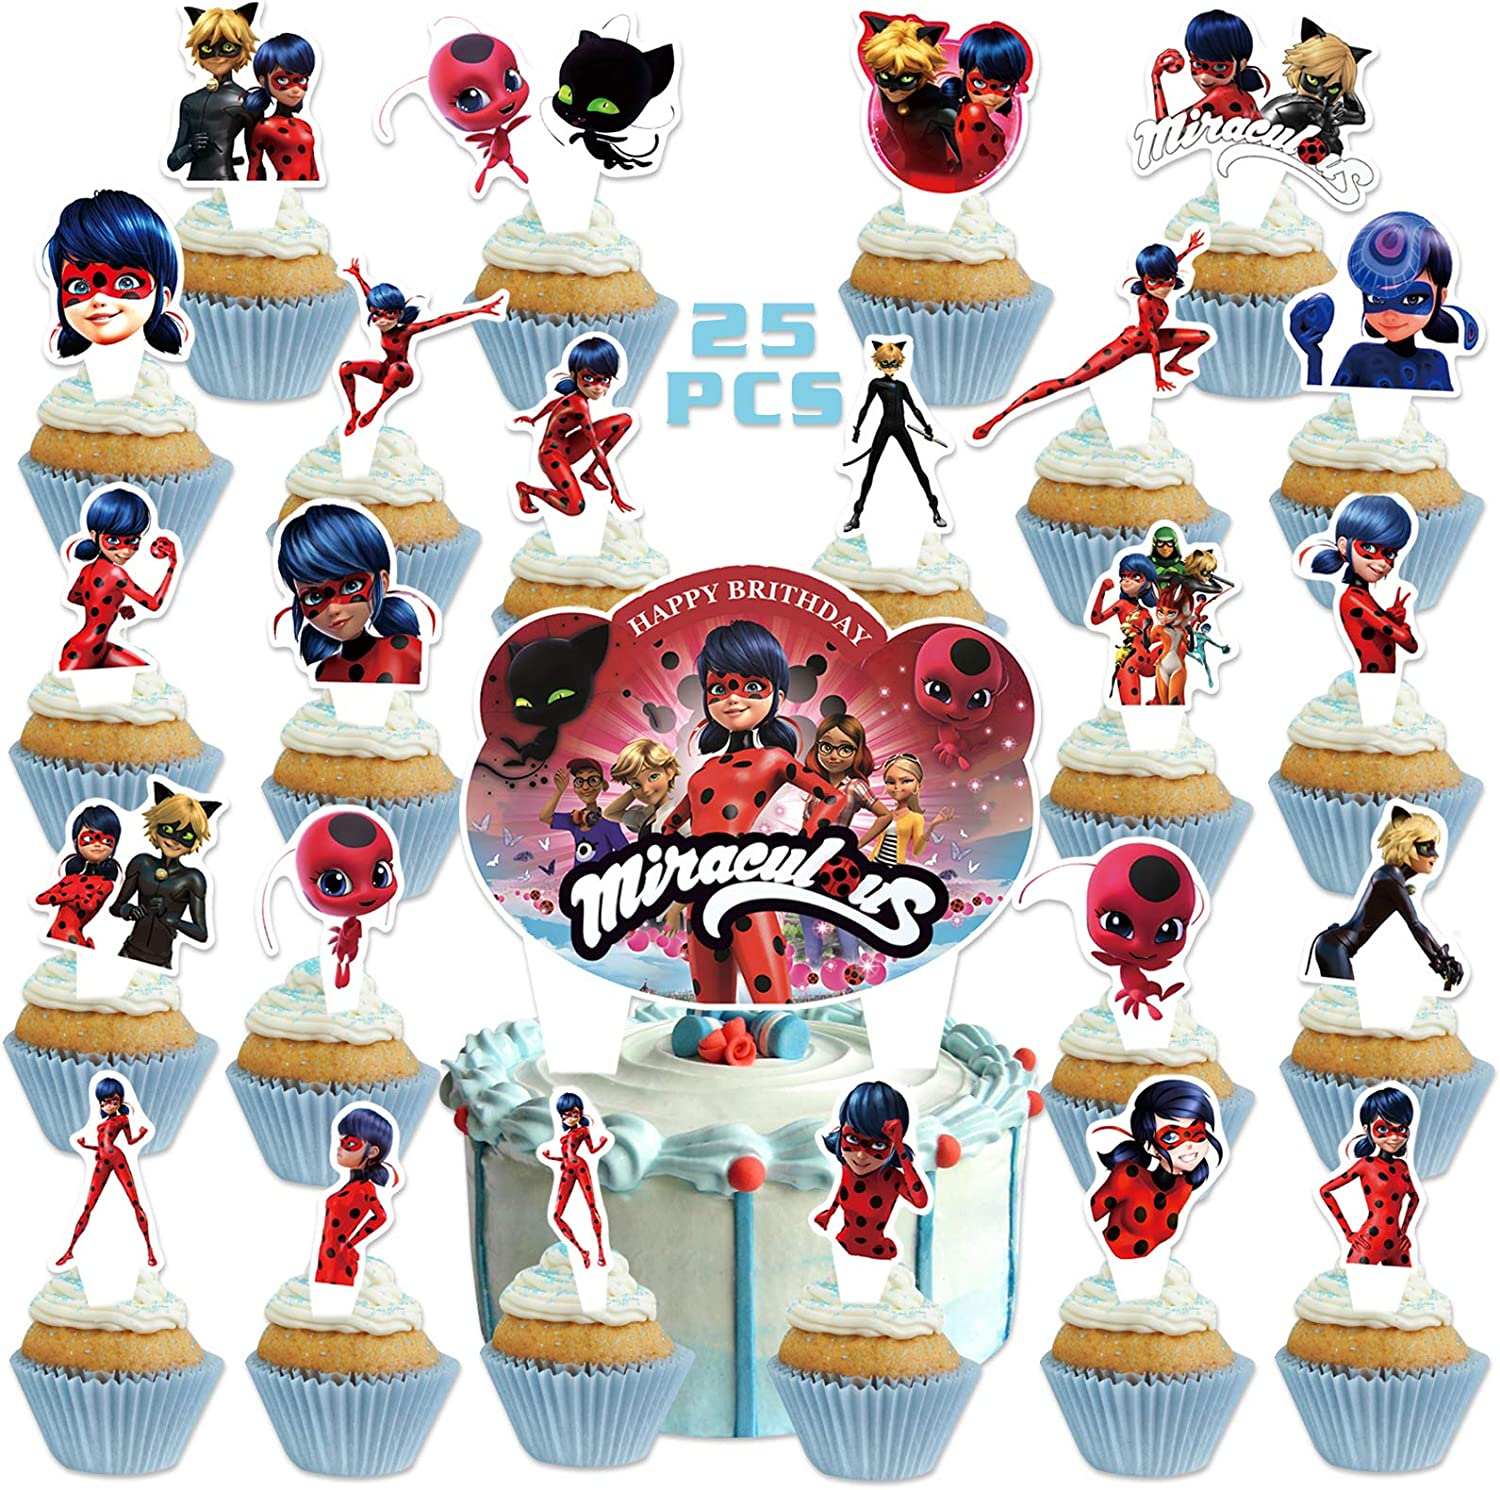 25PCS Miraculou/_s Ladybu/_g Cake Toppers for Kids Birthday Party Supplies Cat Theme Party Decorations